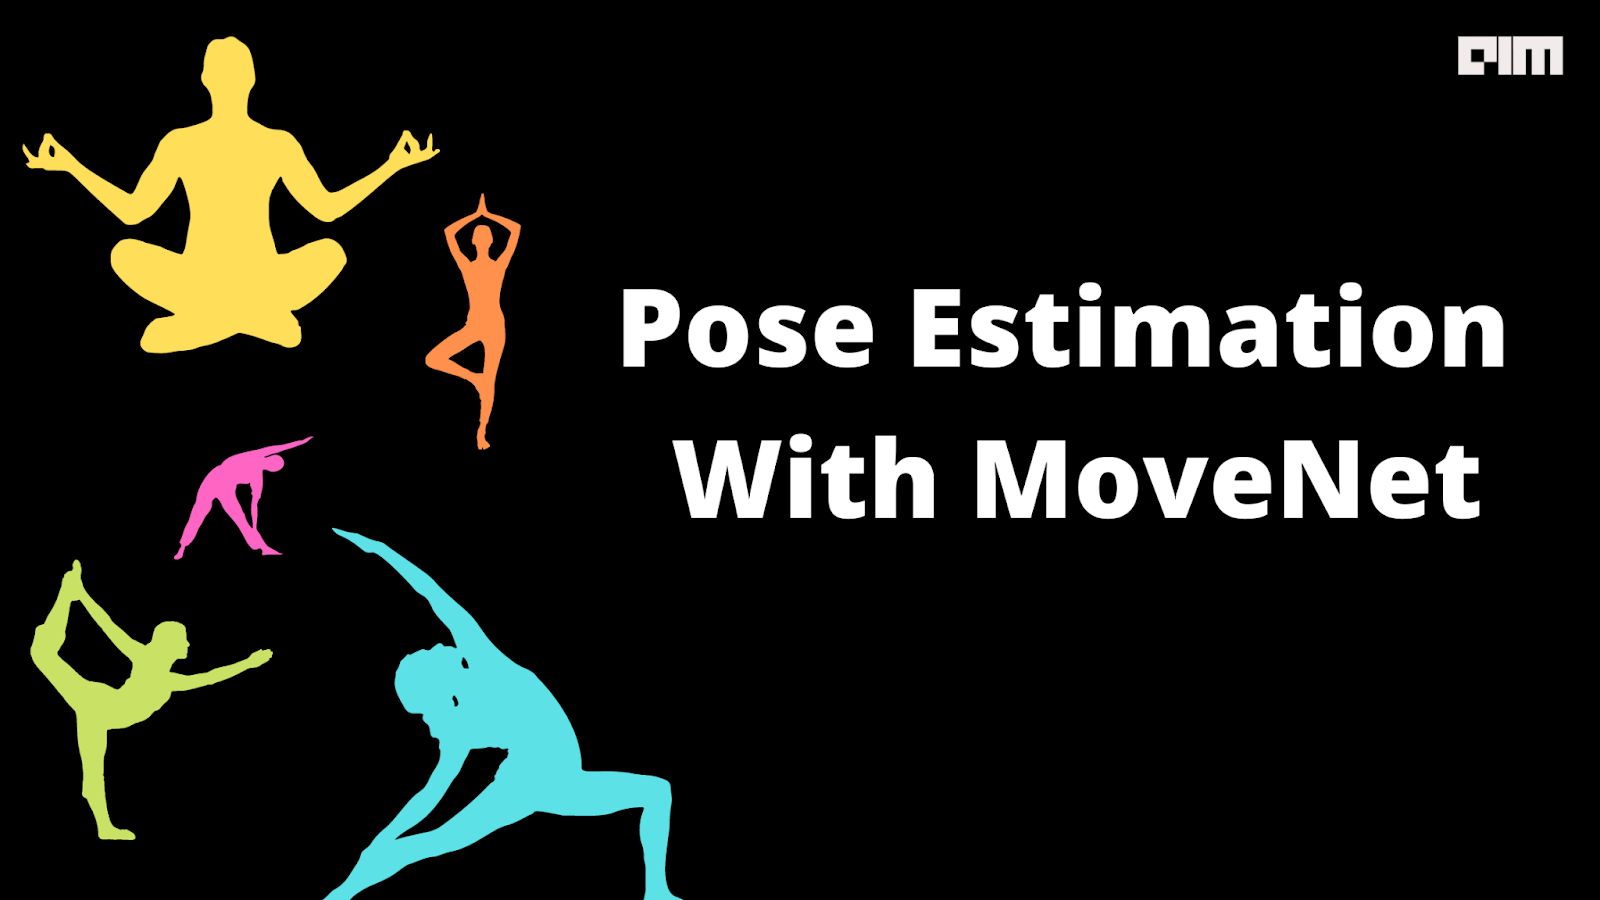 How to do Pose Estimation With MoveNet